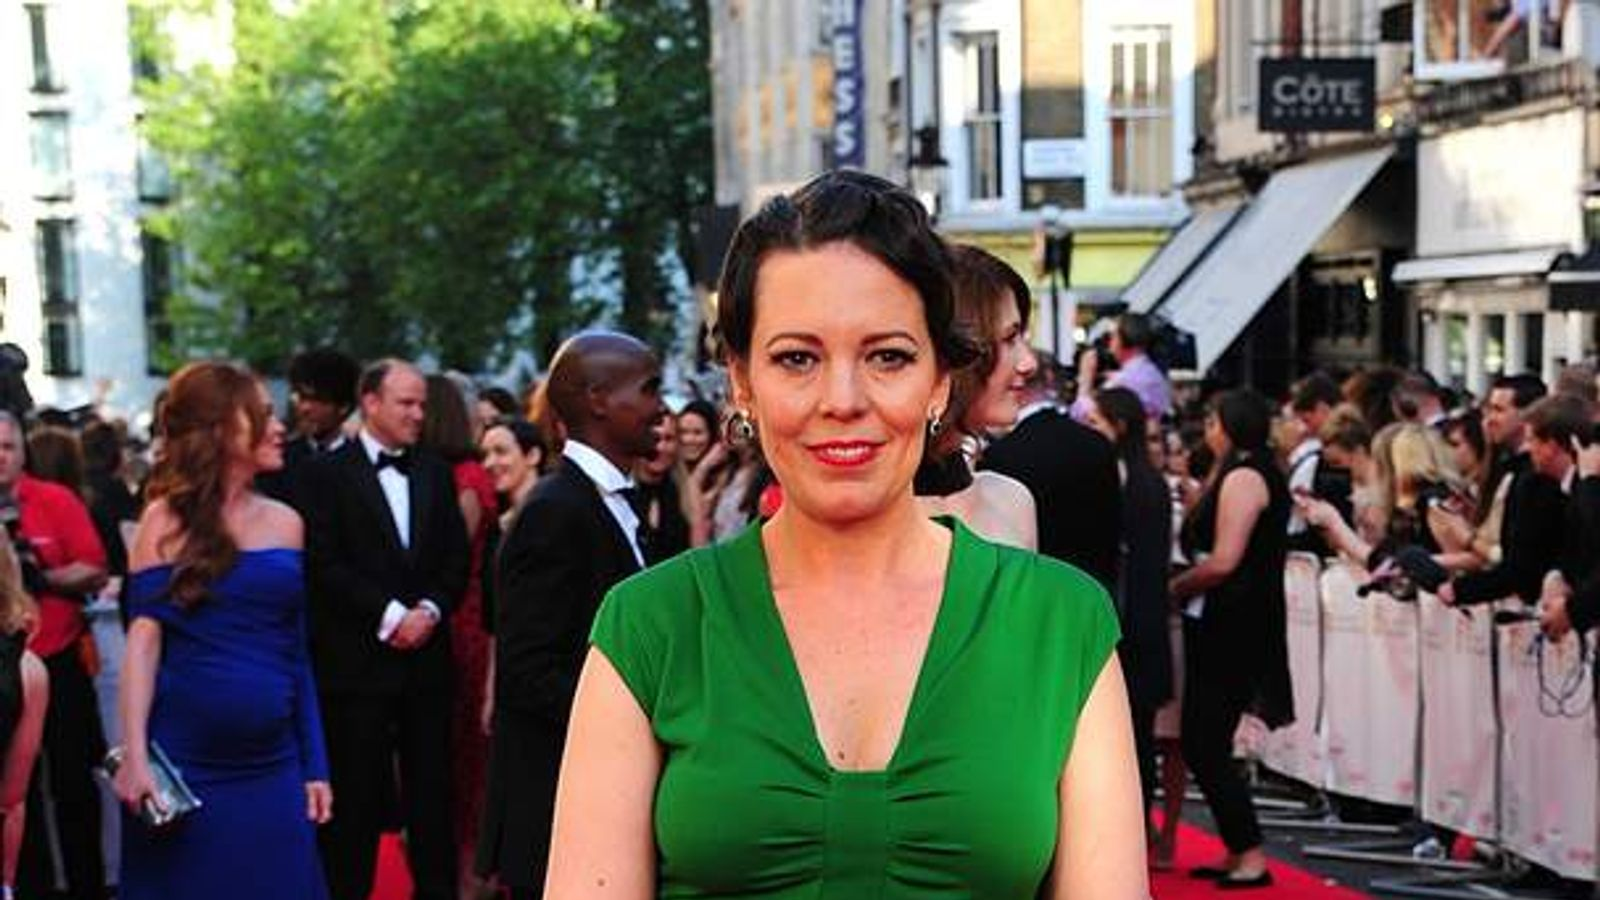 Broadchurch actress Olivia Colman